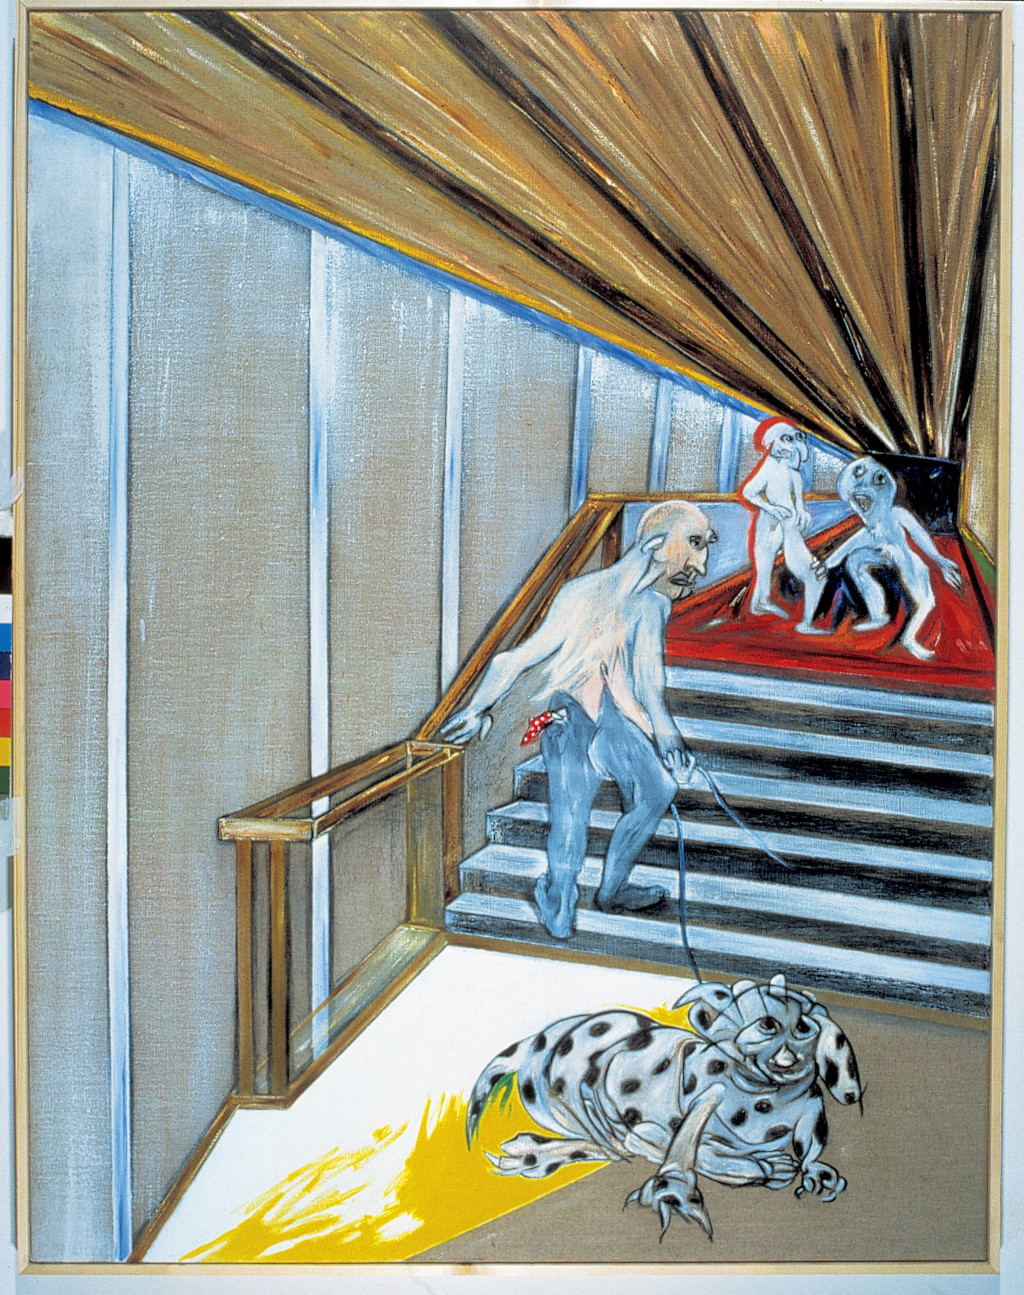 Jacqueline de Jong, 'Upstairs-Downstairs', 1985. Collectie Stadhuis Amsterdam. Courtesy de kunstenaar.